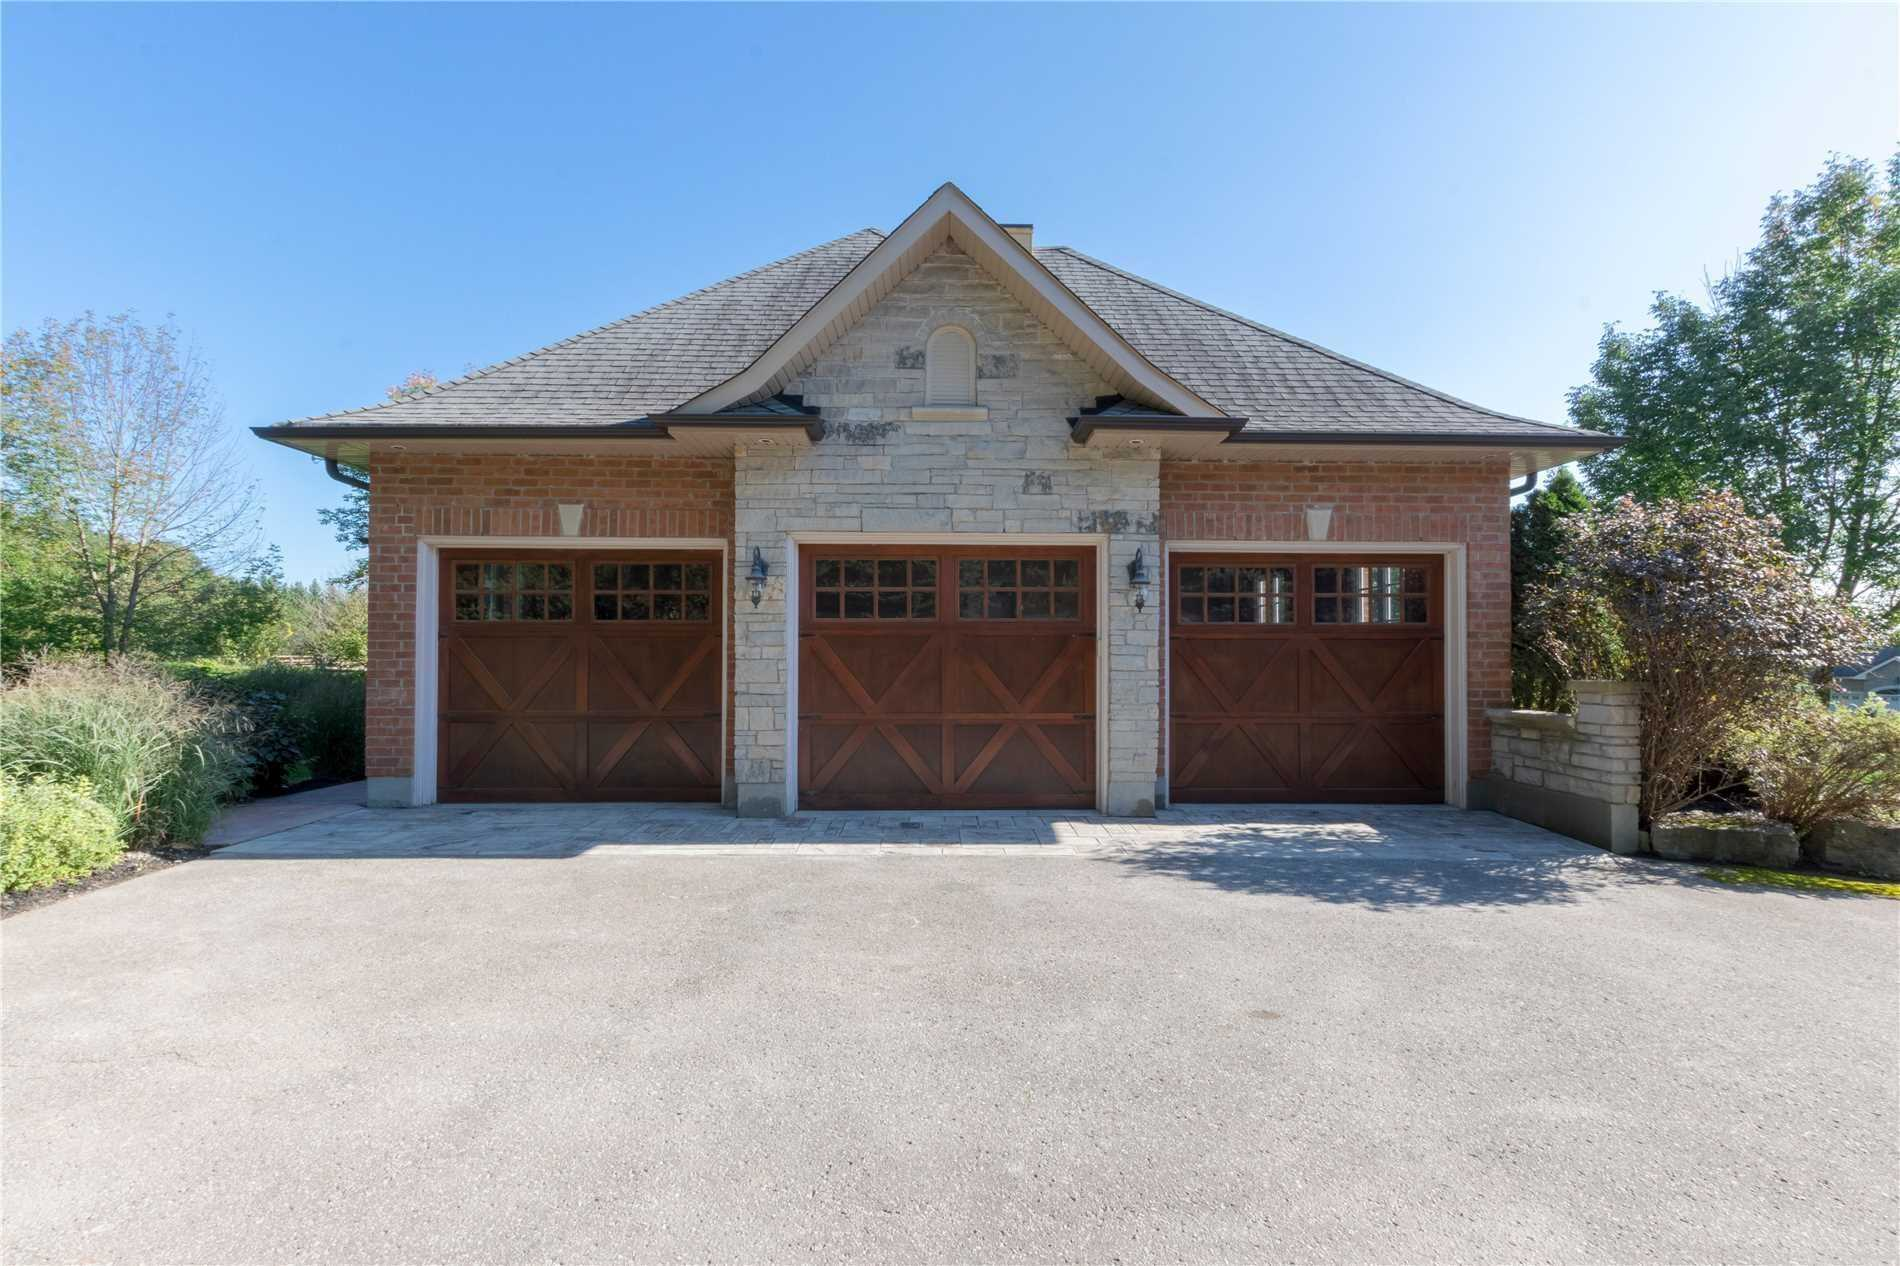 10 Earl Cook Dr, Whitchurch-Stouffville N4539742